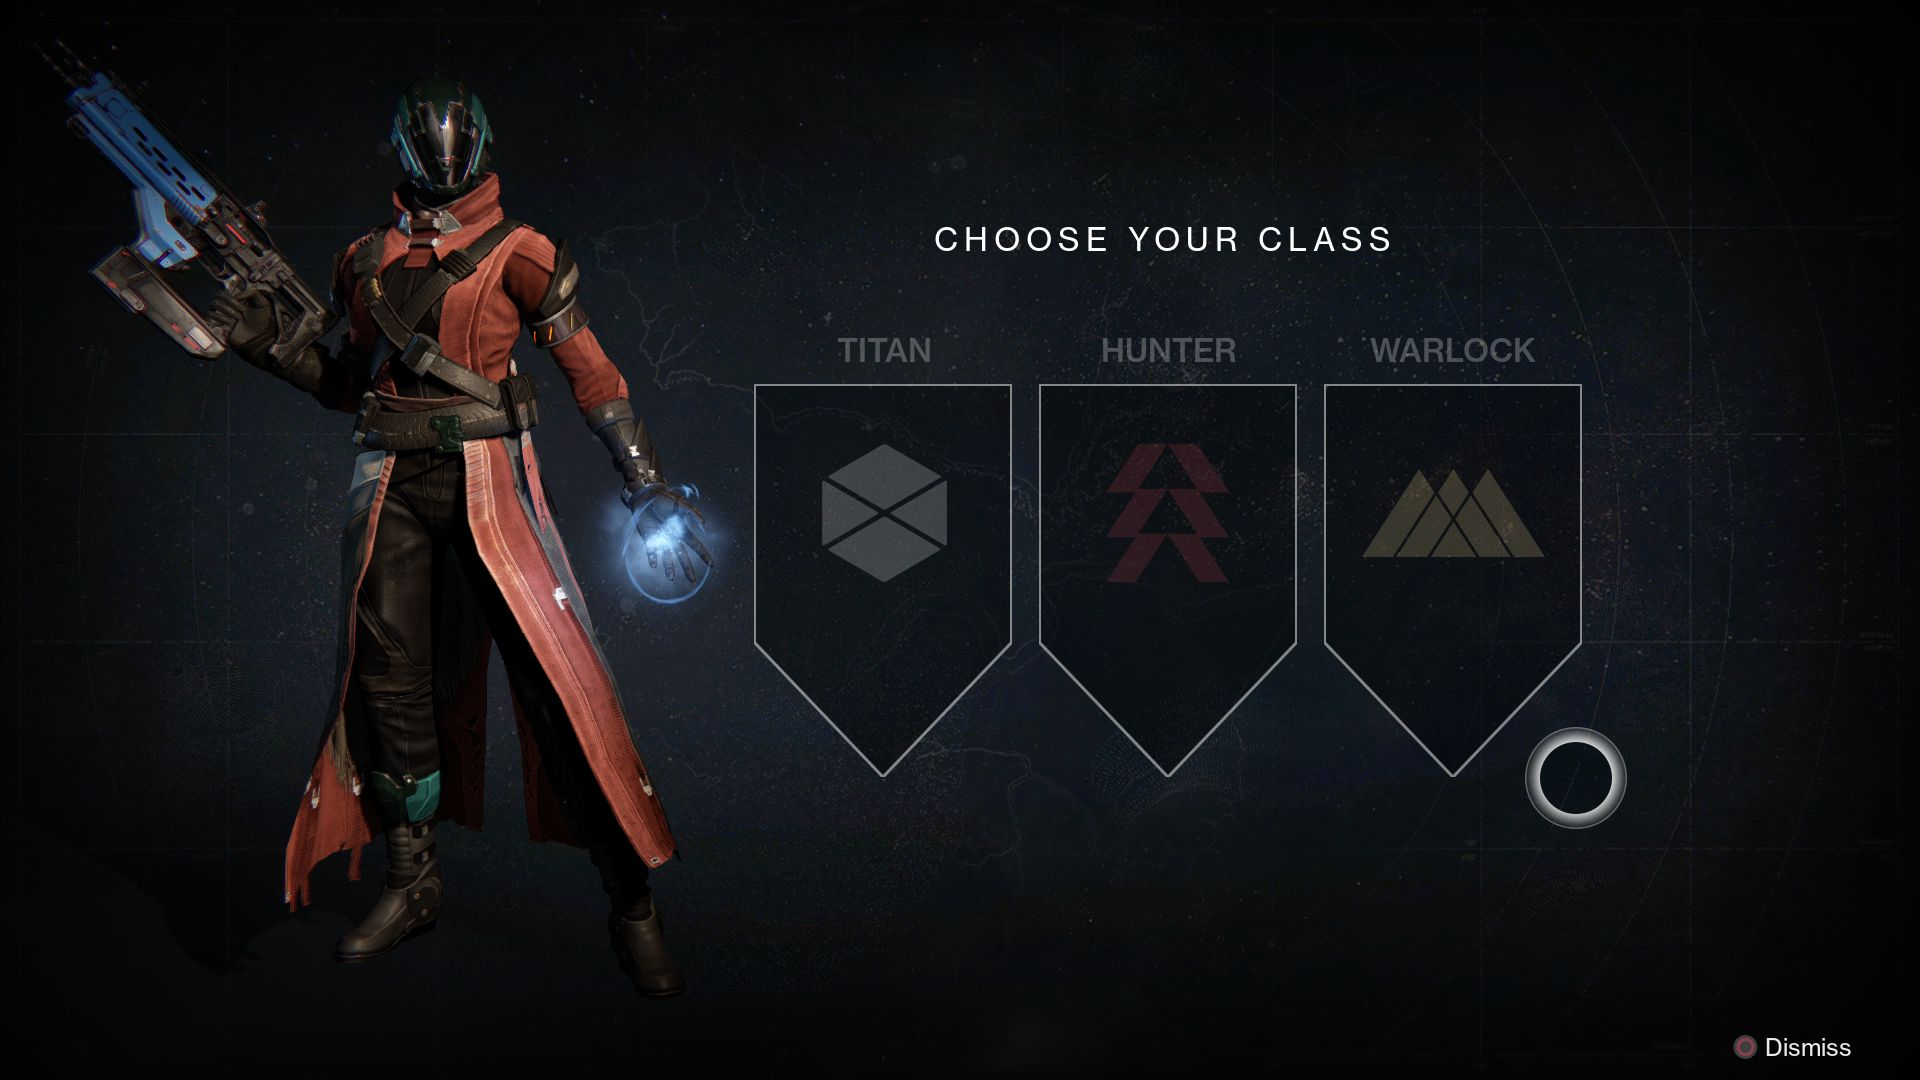 Destiny 2 Class Guide - should you pick Titan, Hunter or